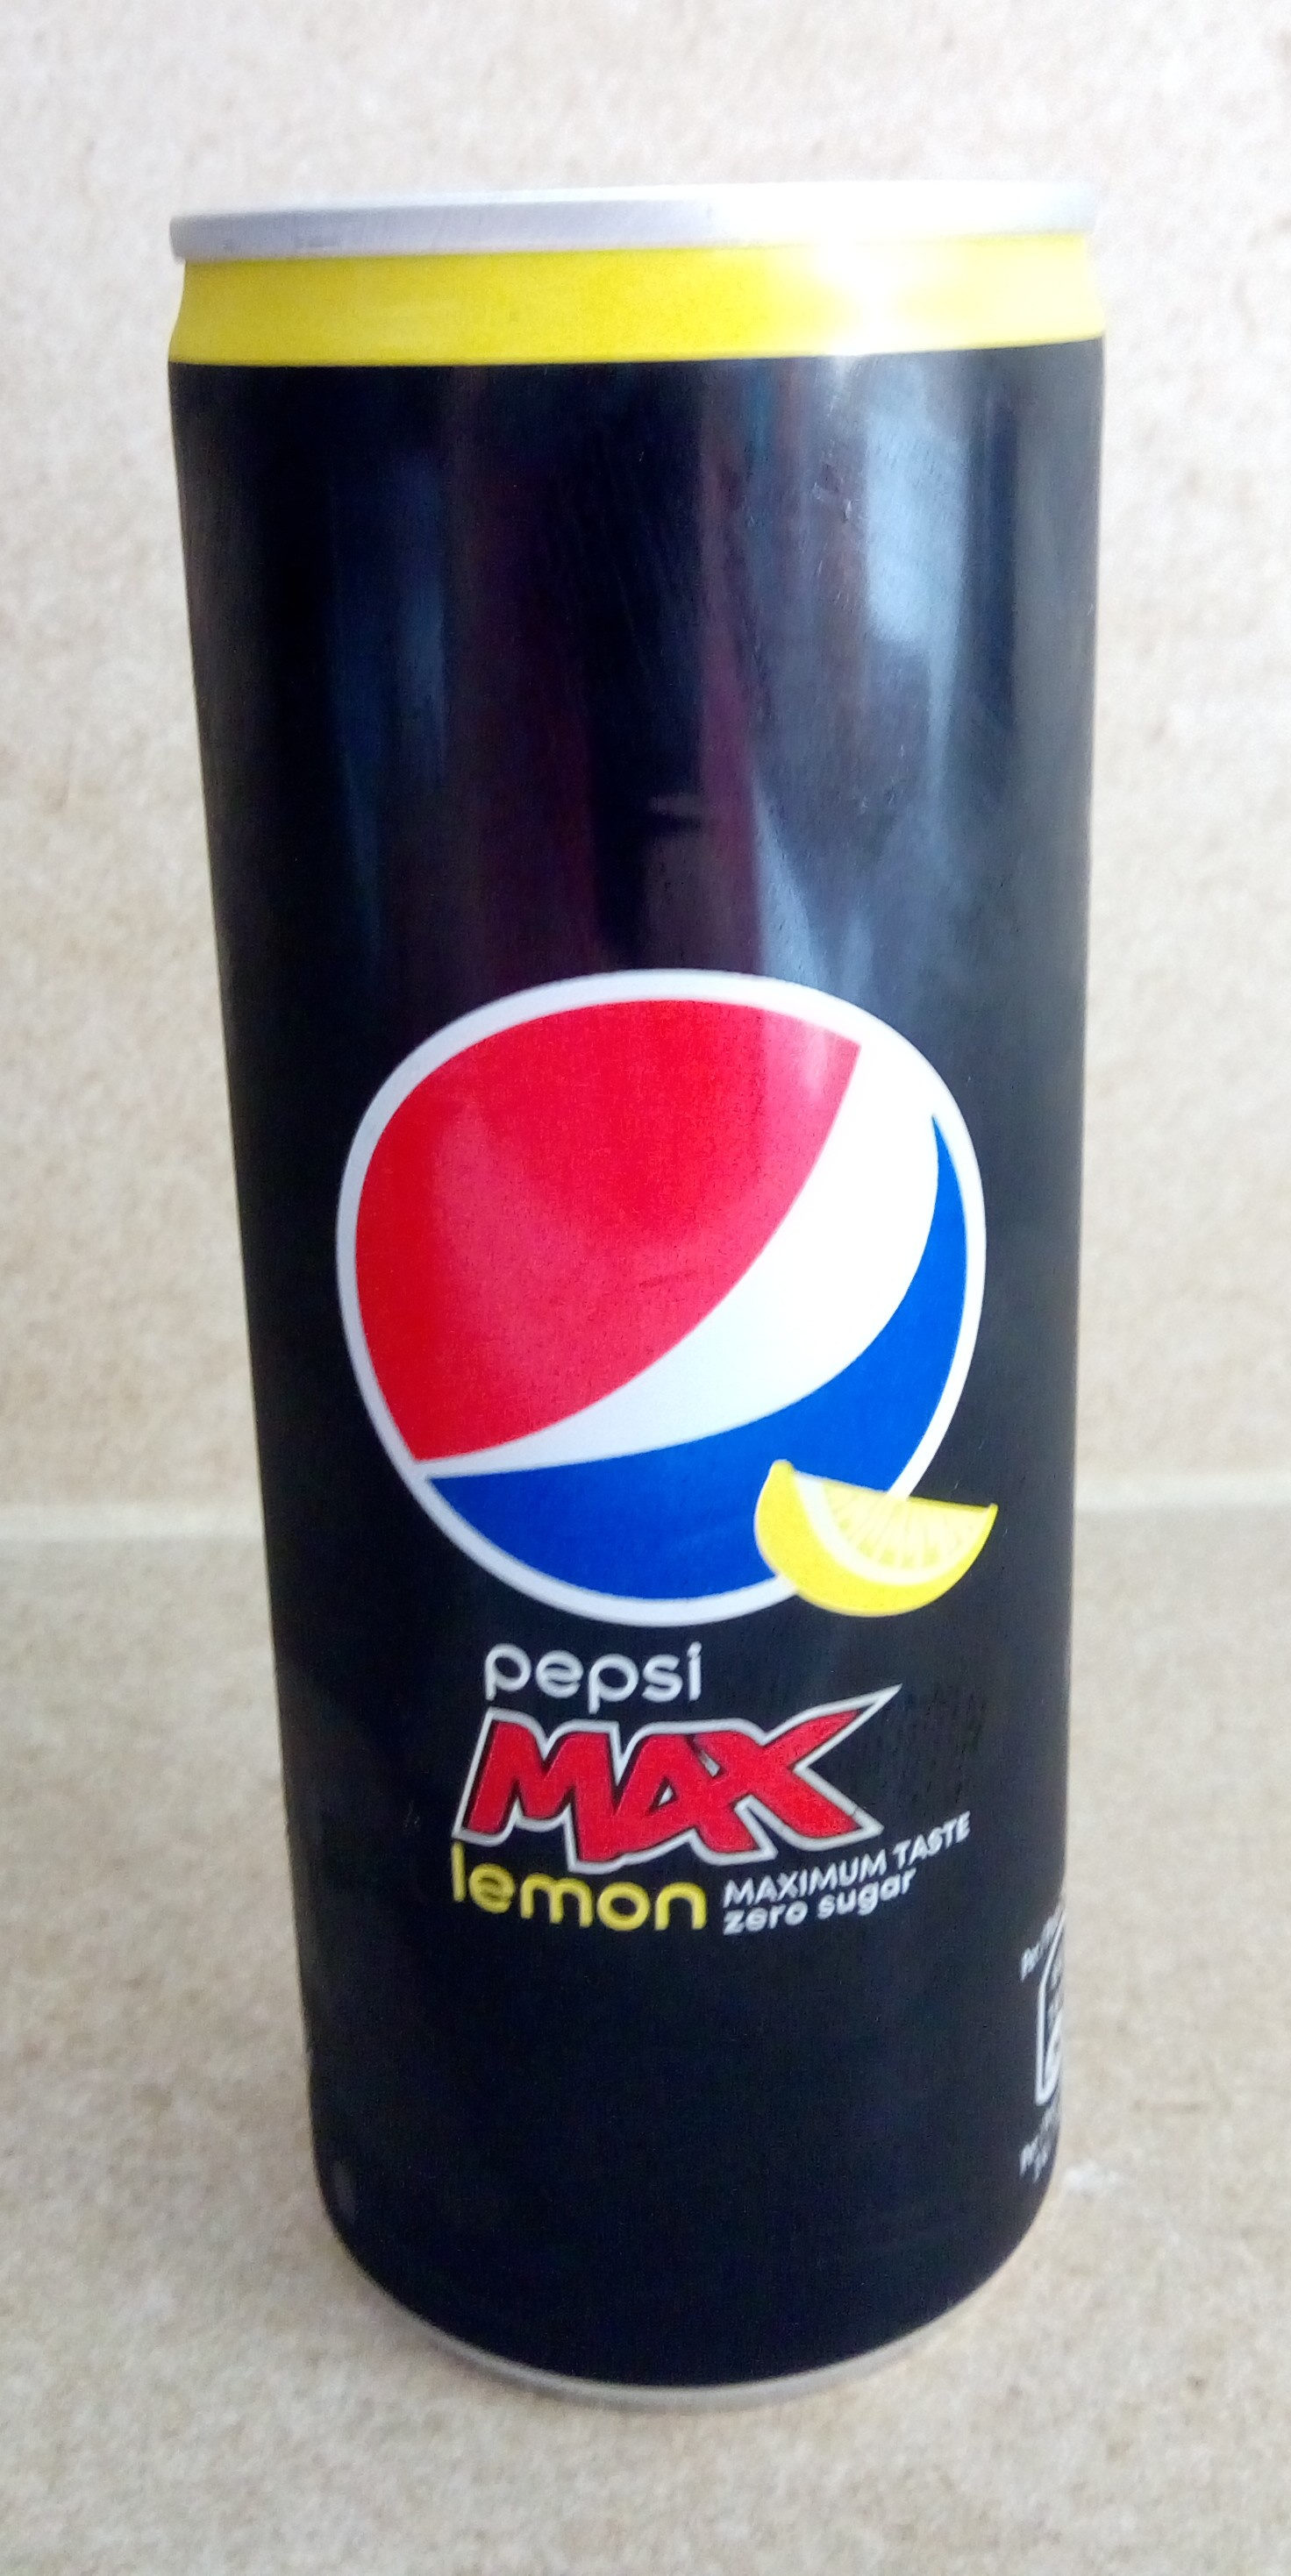 Pepsi max lemon - Product